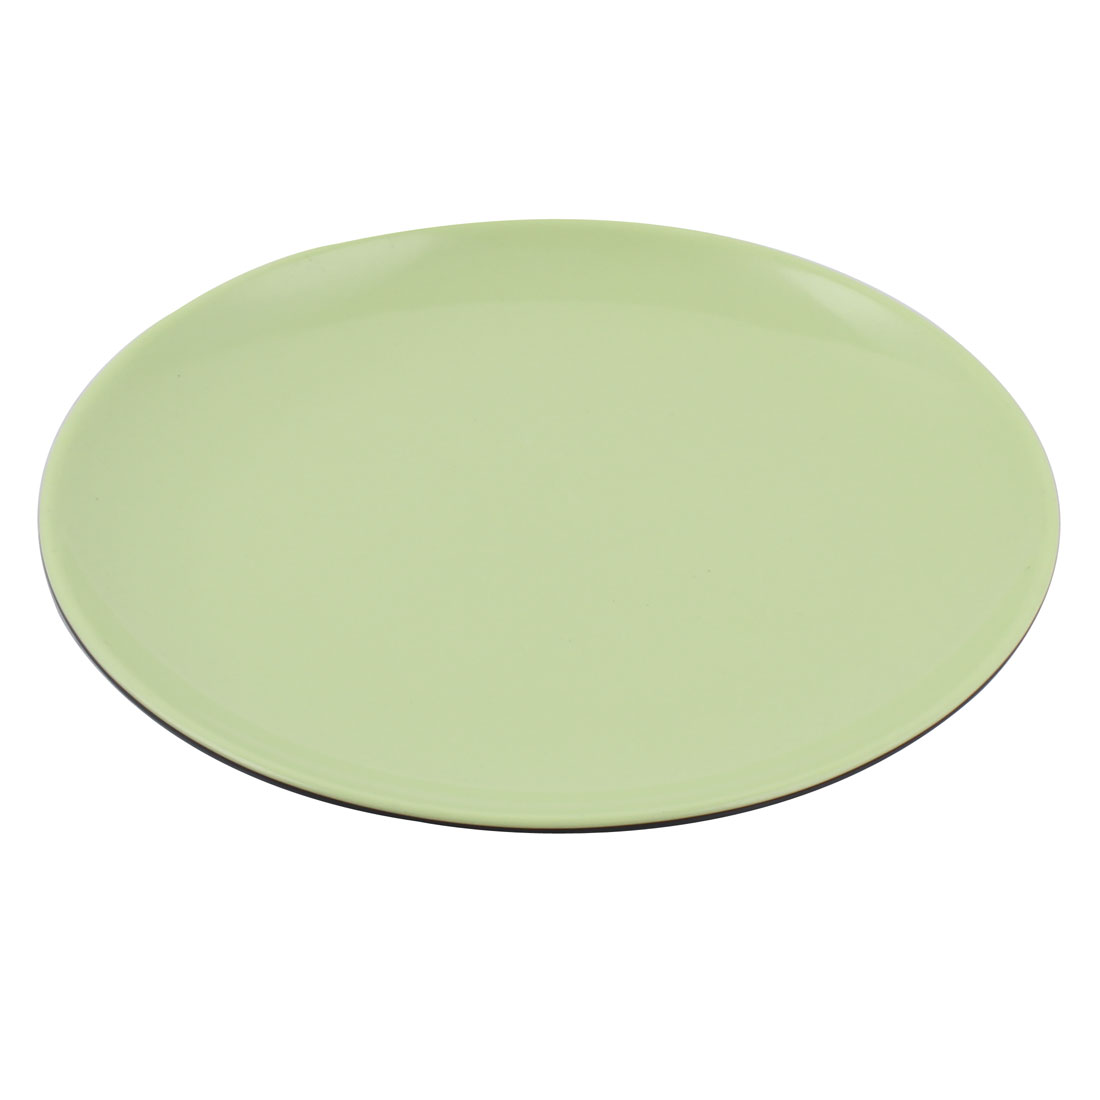 Home Plastic Round Dinnerware Cooking Tool Food Dish Plate Green 22.5cm x 2cm